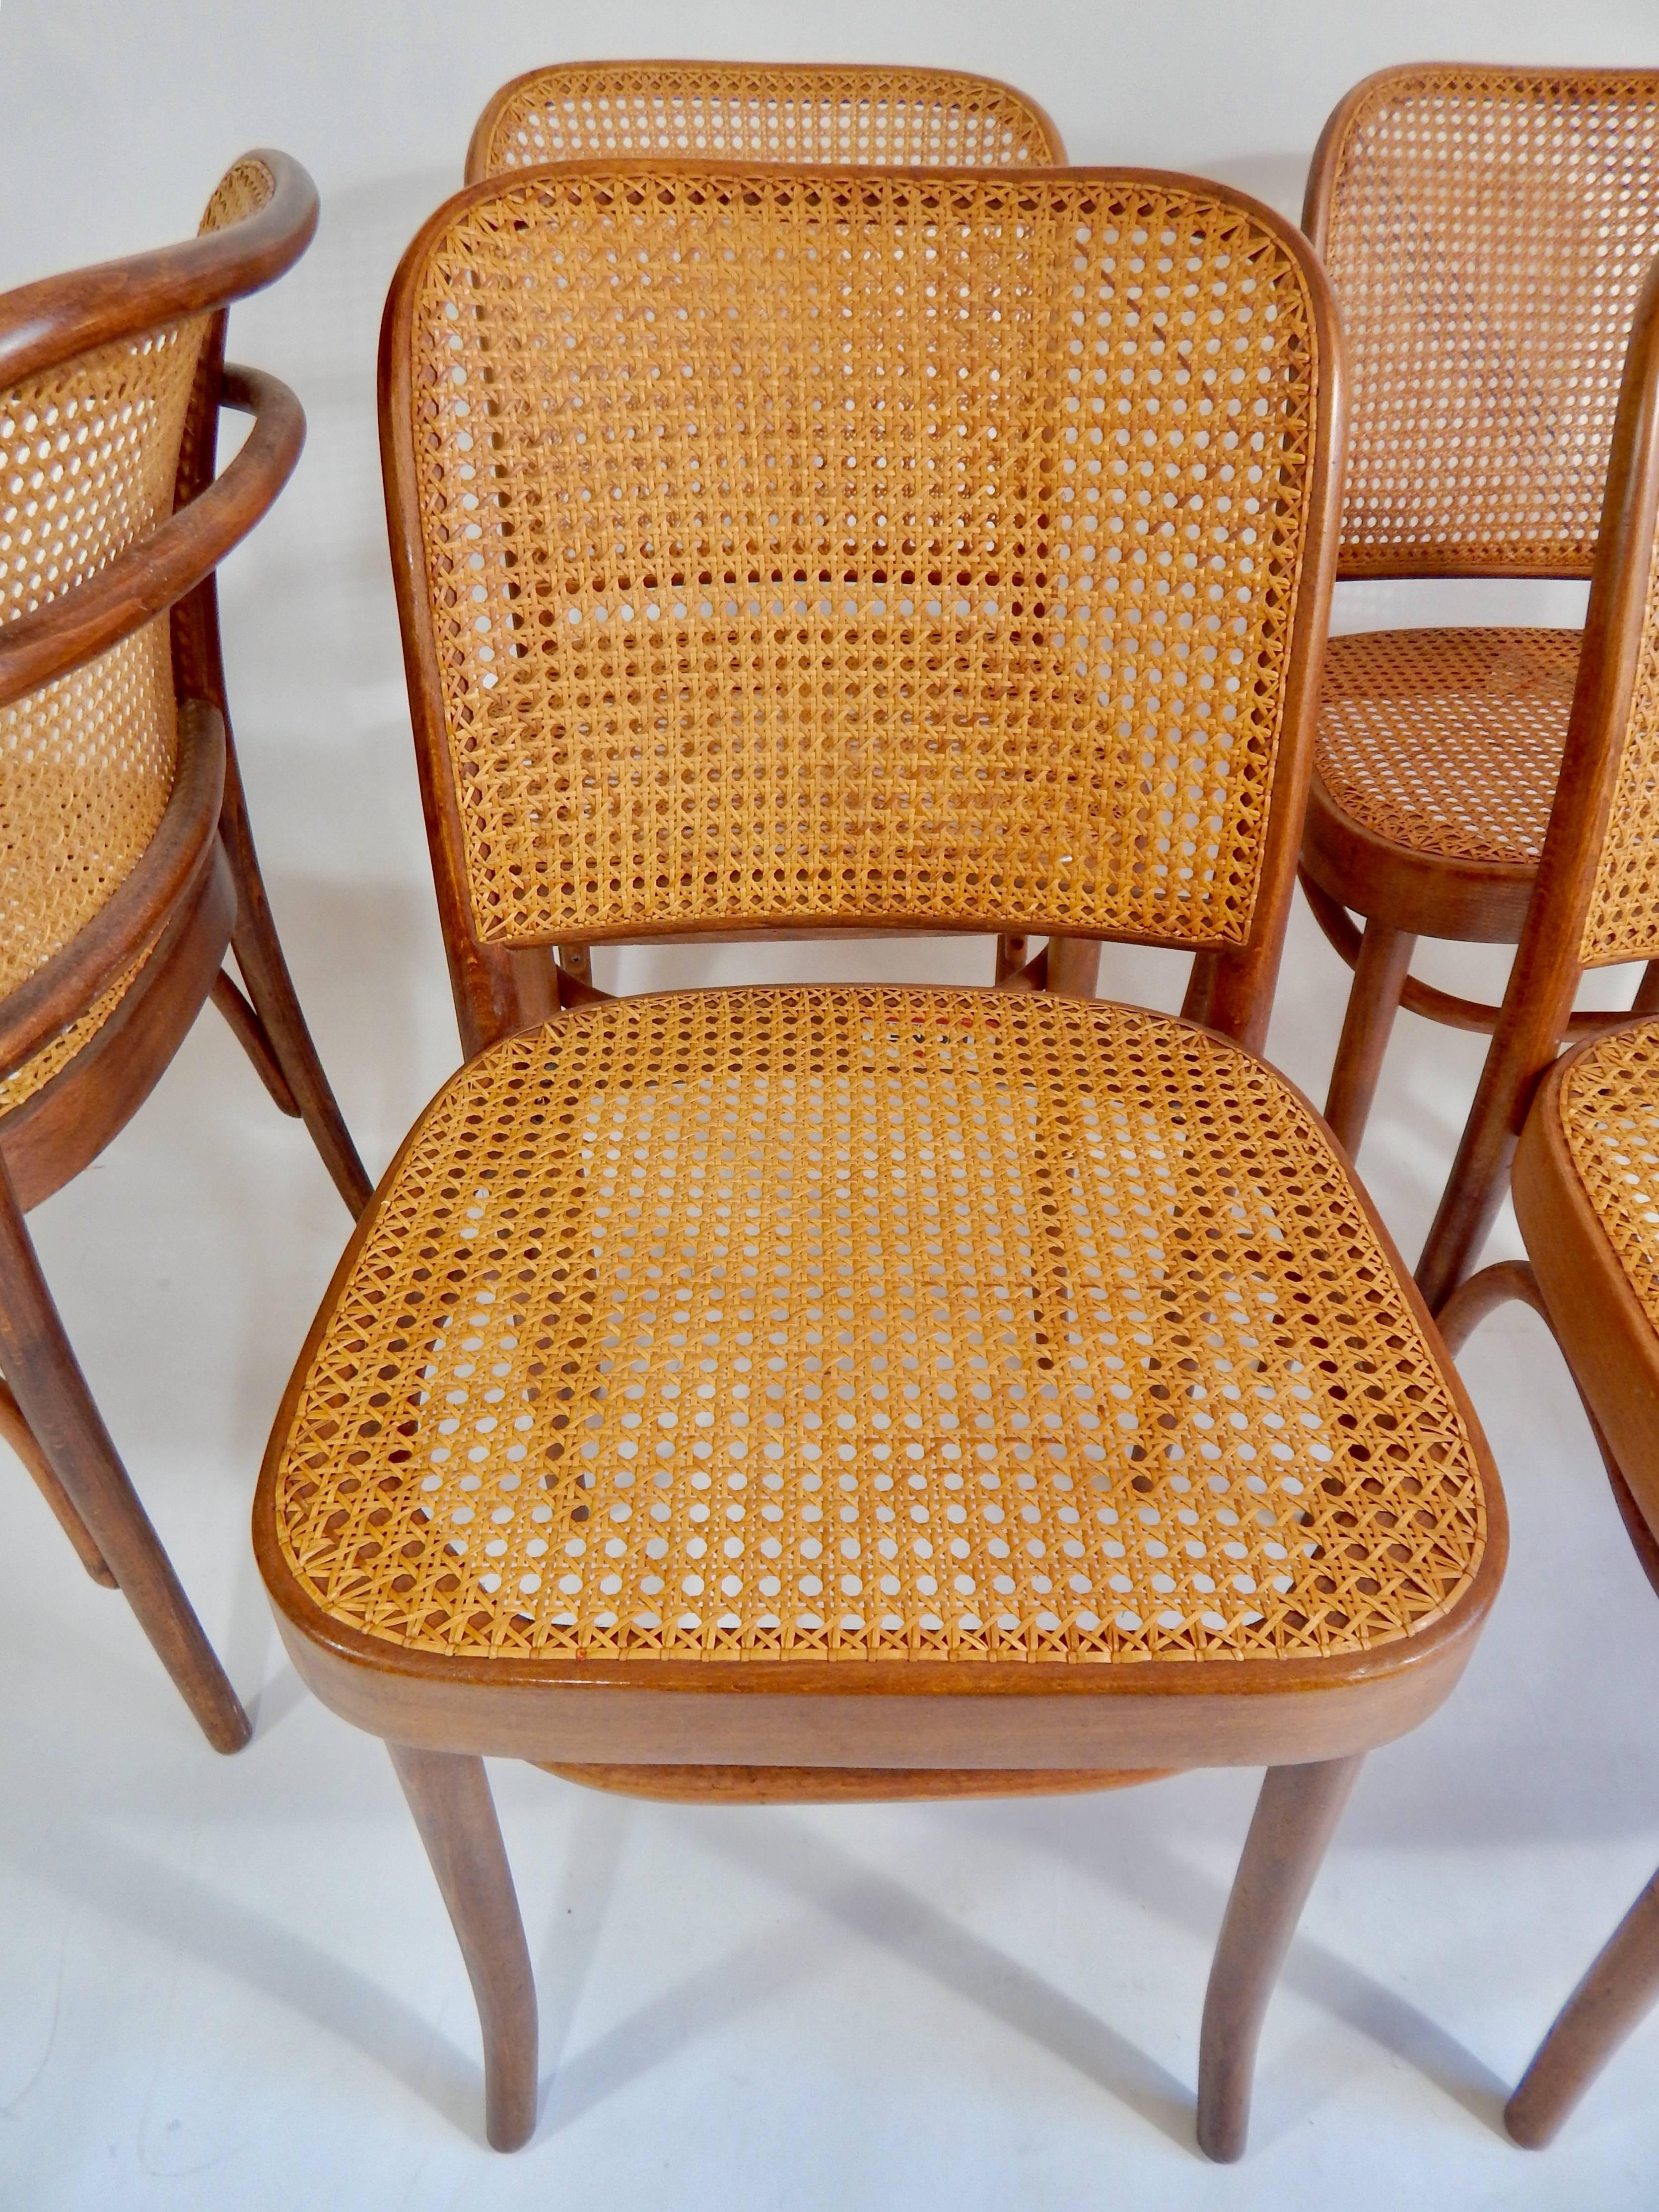 Caning Original 1920s Josef Hoffmann Thonet Bentwood Cane Chairs, Poland  For Sale